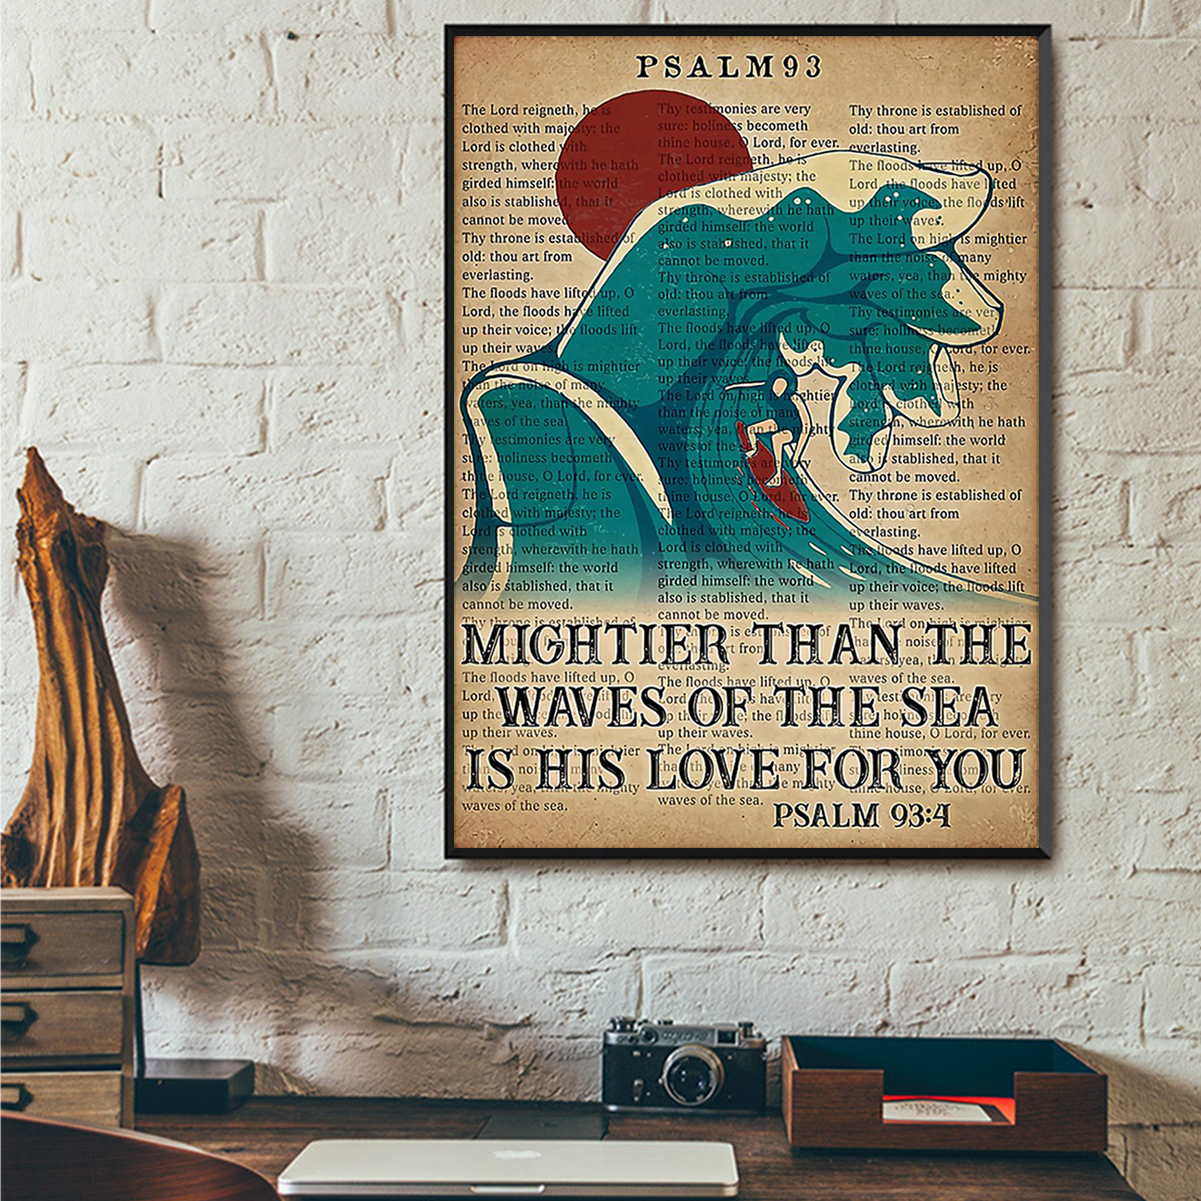 Mightier than the waves of the sea is his love for you poster A3